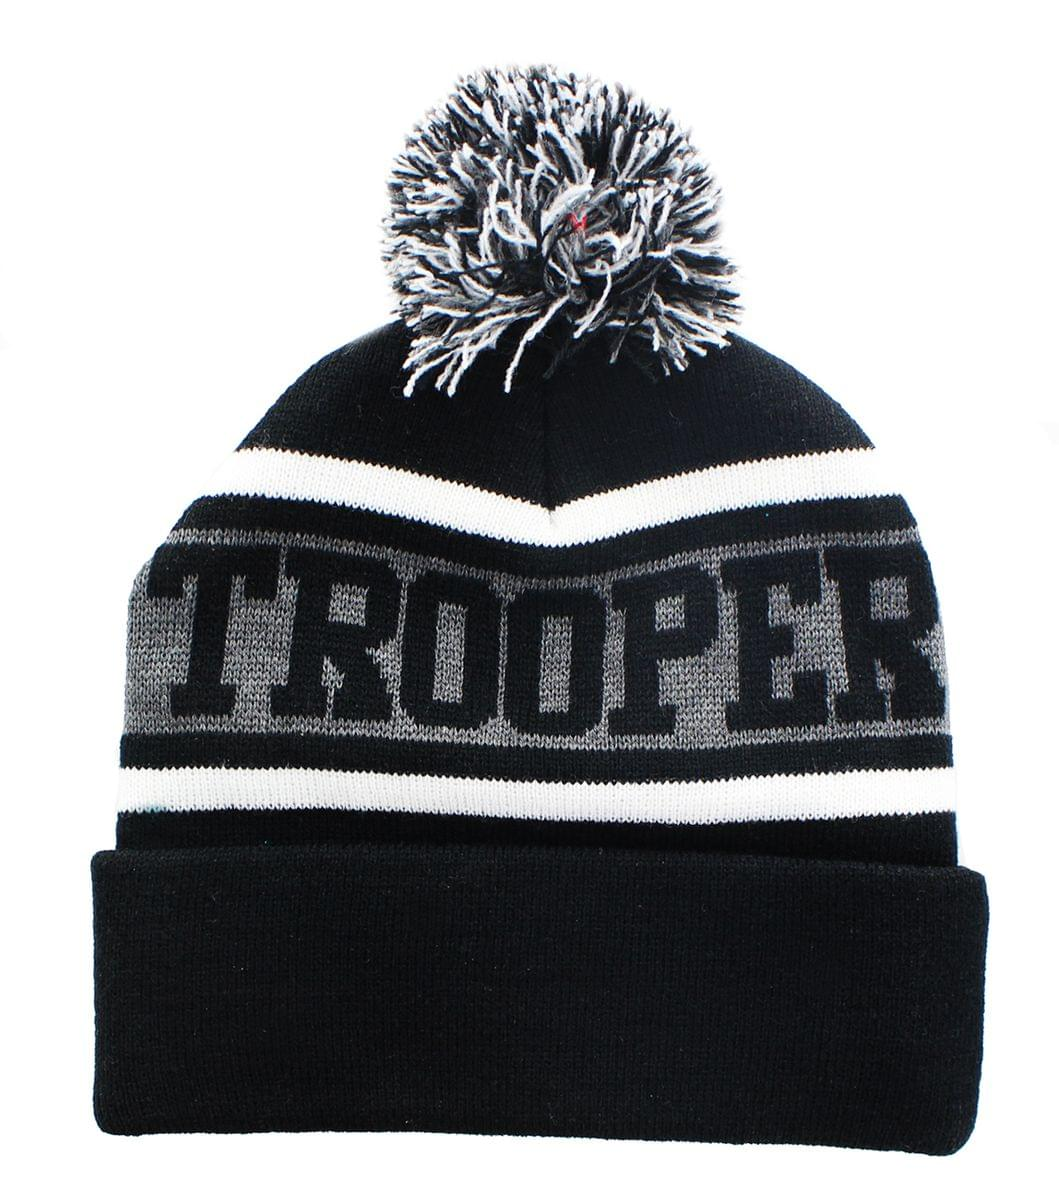 Star Wars Stormtrooper Beanie